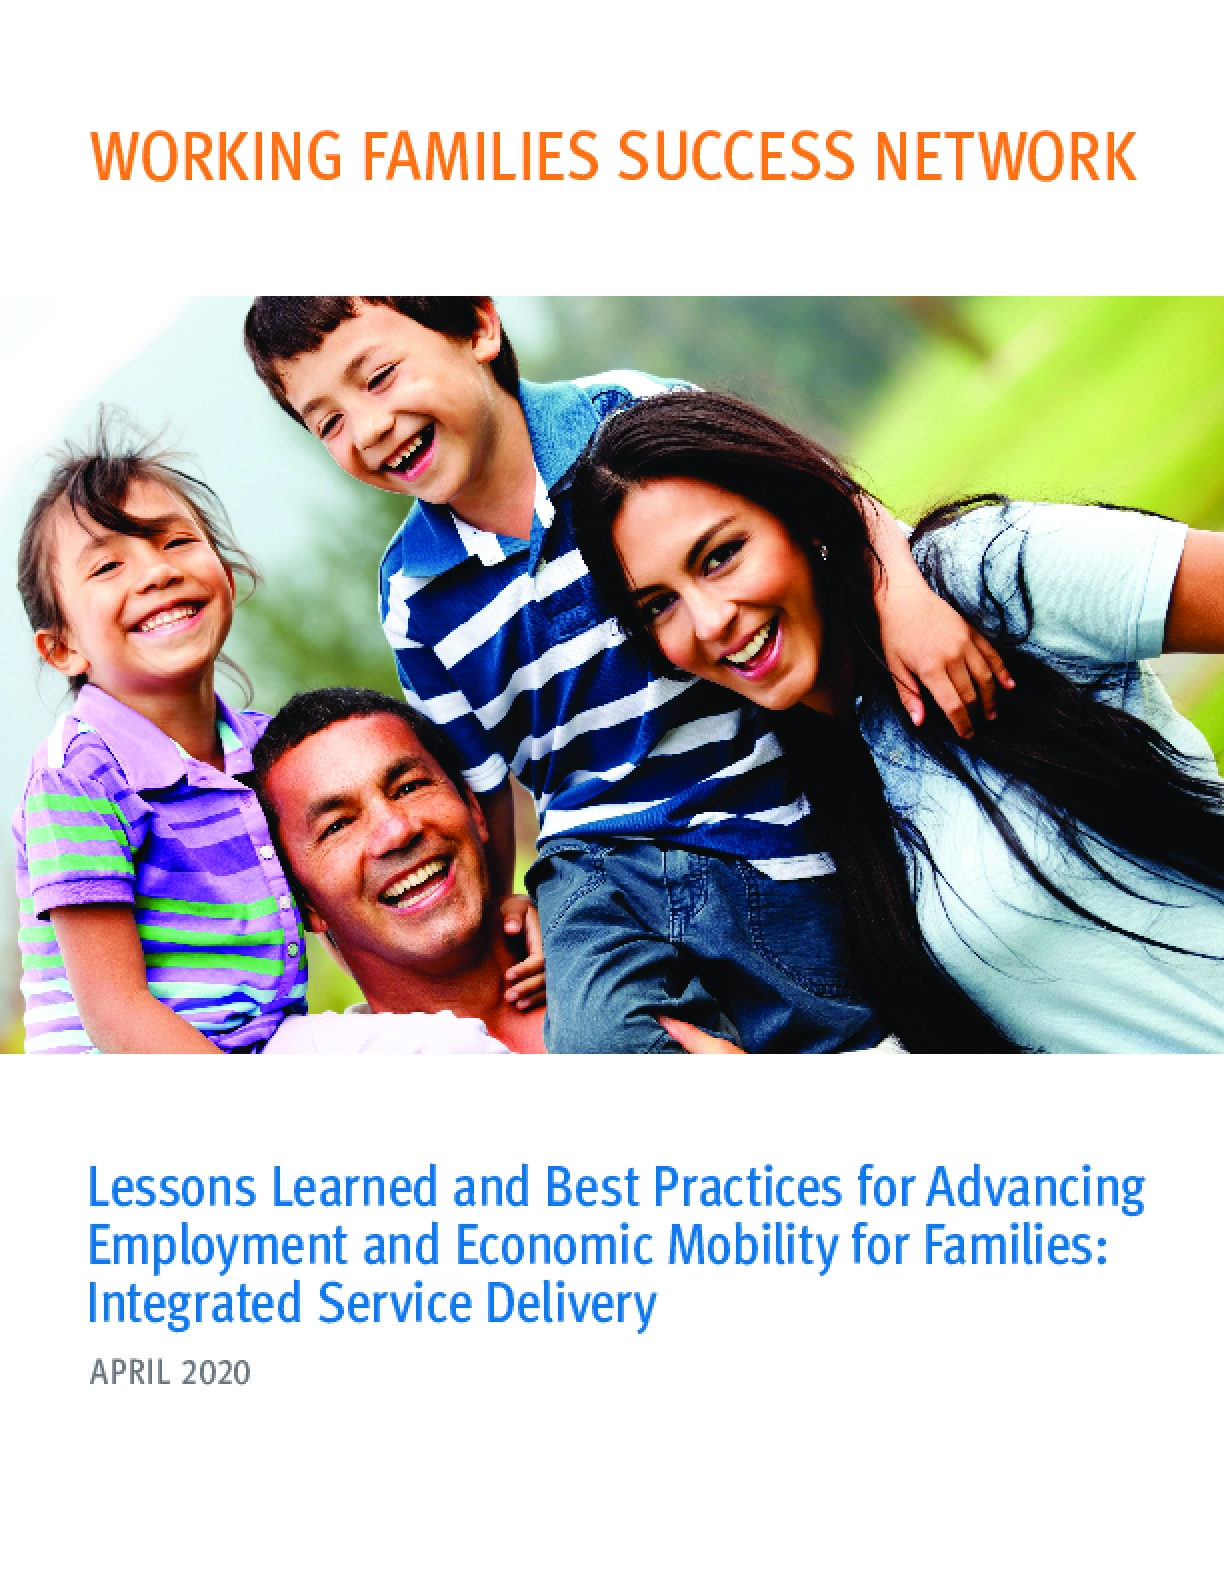 Lessons Learned and Best Practices for Advancing Employment and Economic Mobility for Families: Integrated Service Delivery